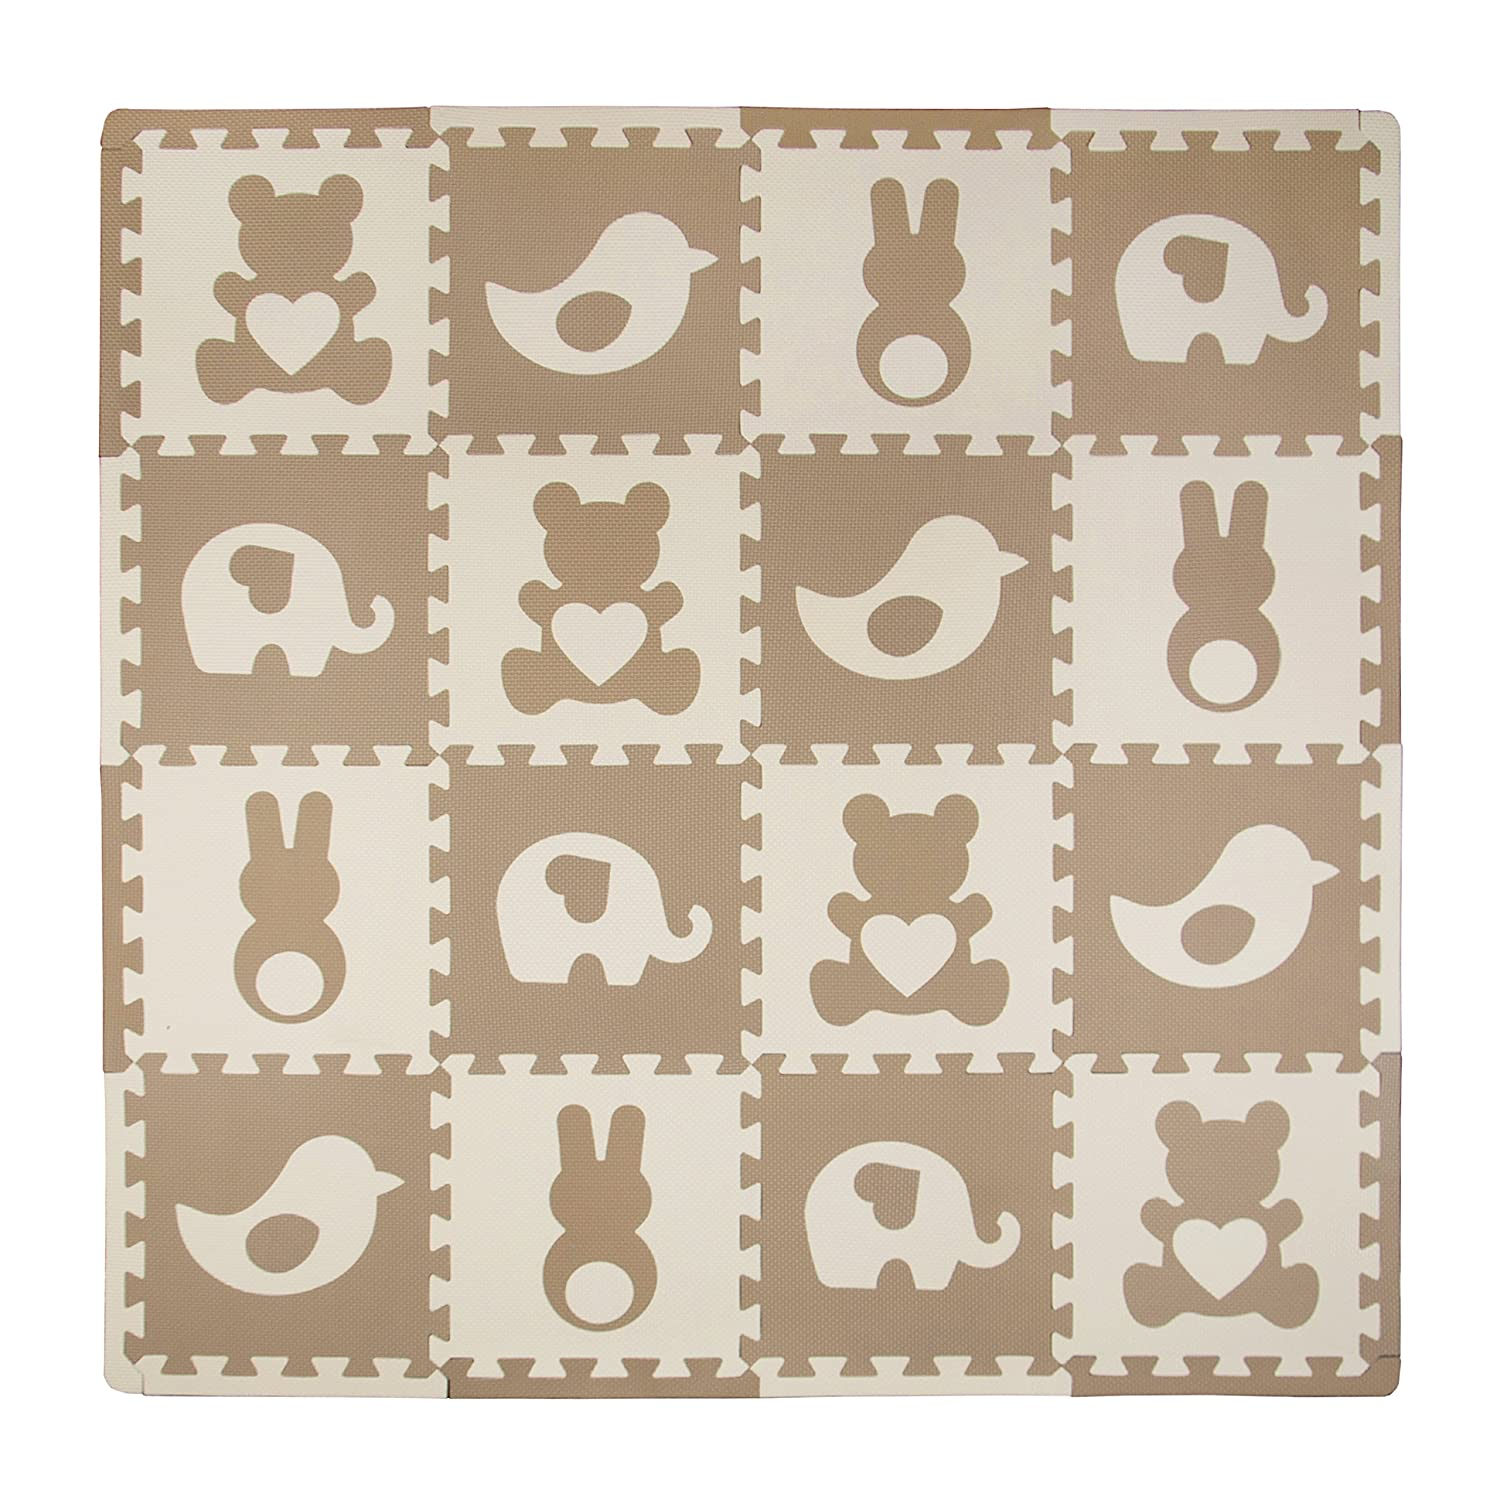 Tadpoles Playmat Set, Teddy and Friends Brown cpmsev929